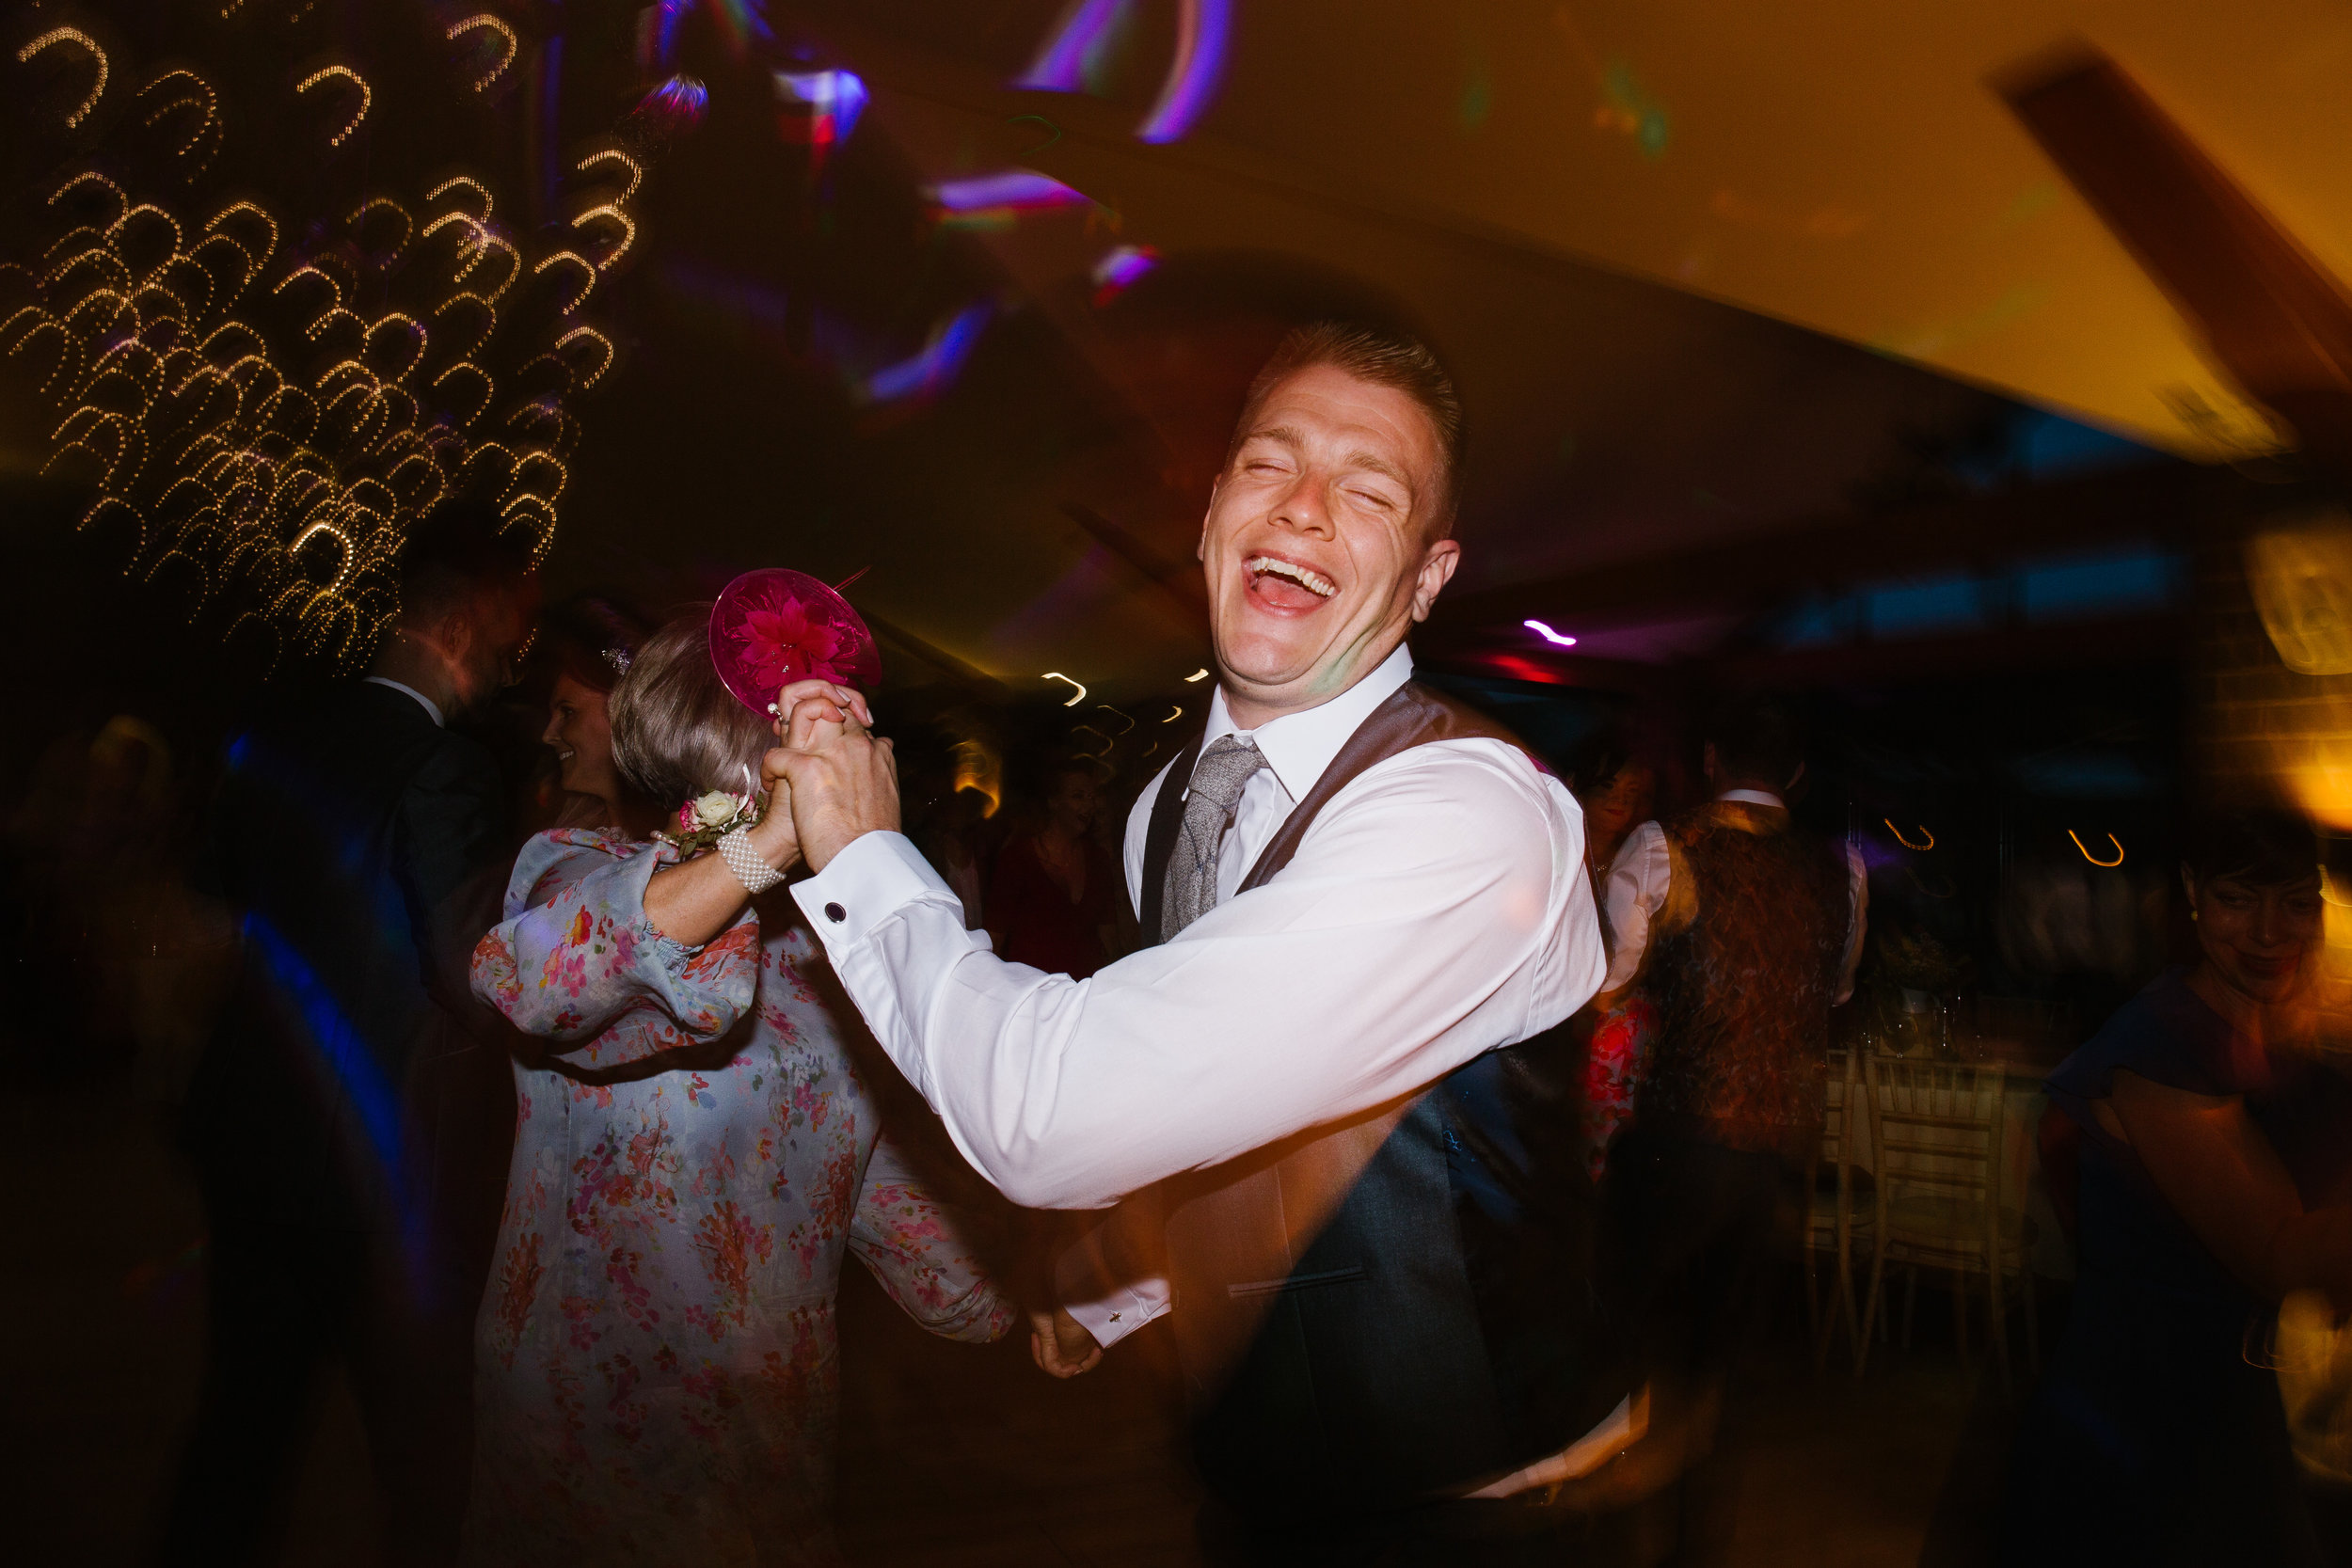 best man dancing on the evening of an awesome wedding